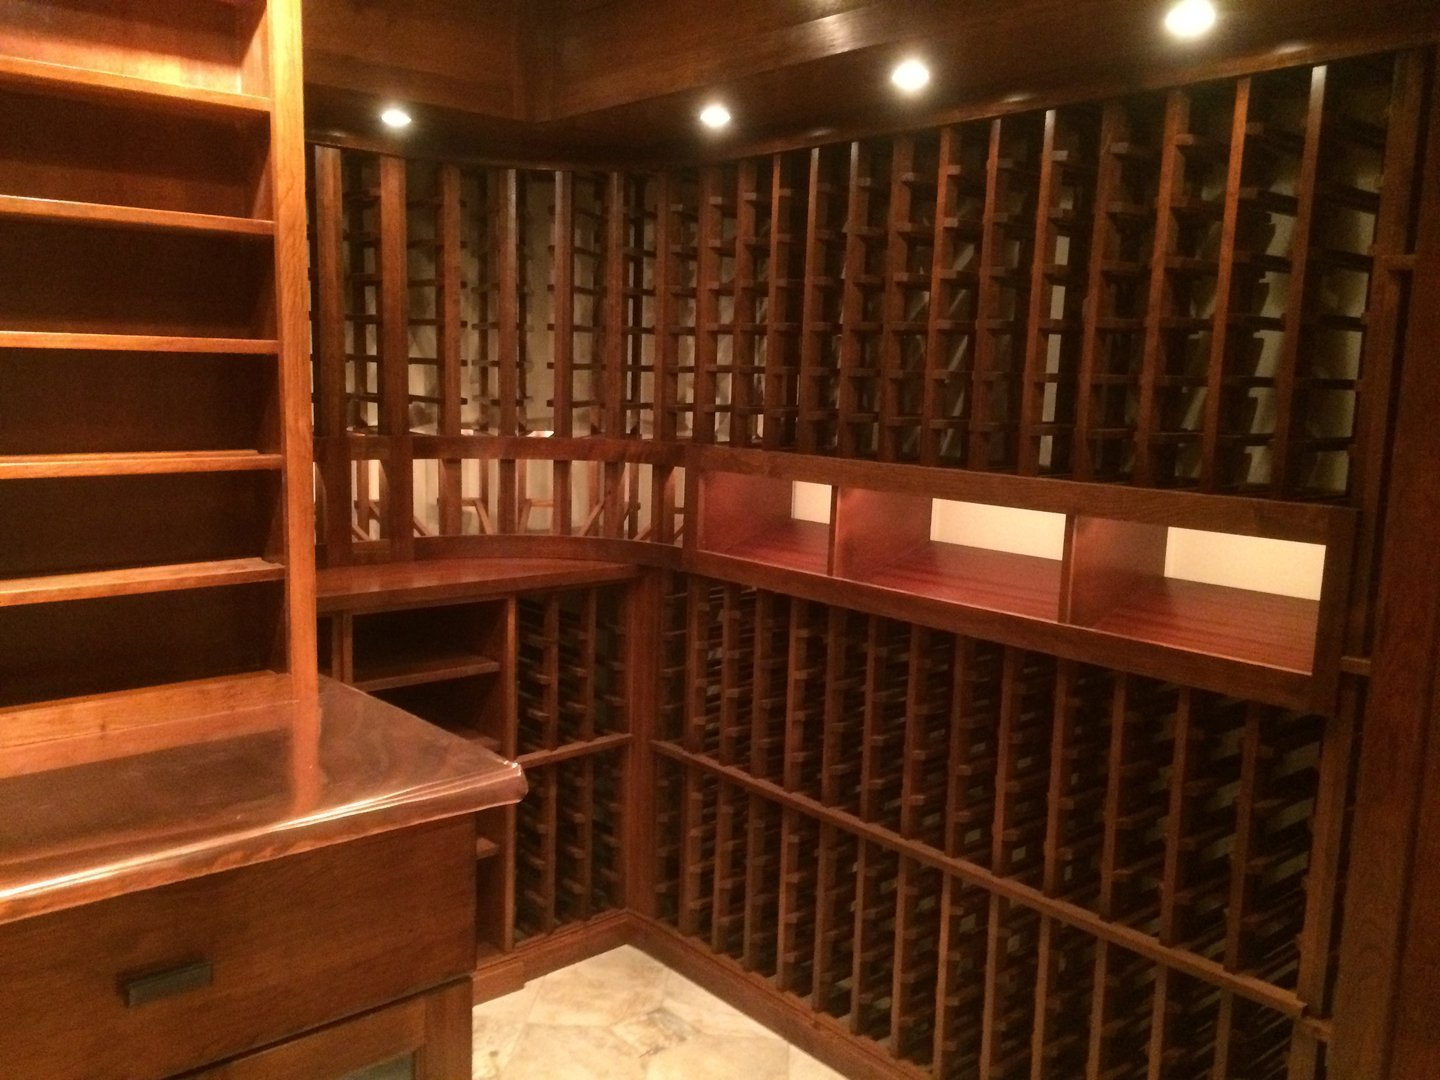 View of copper top, display row and individual wine racks